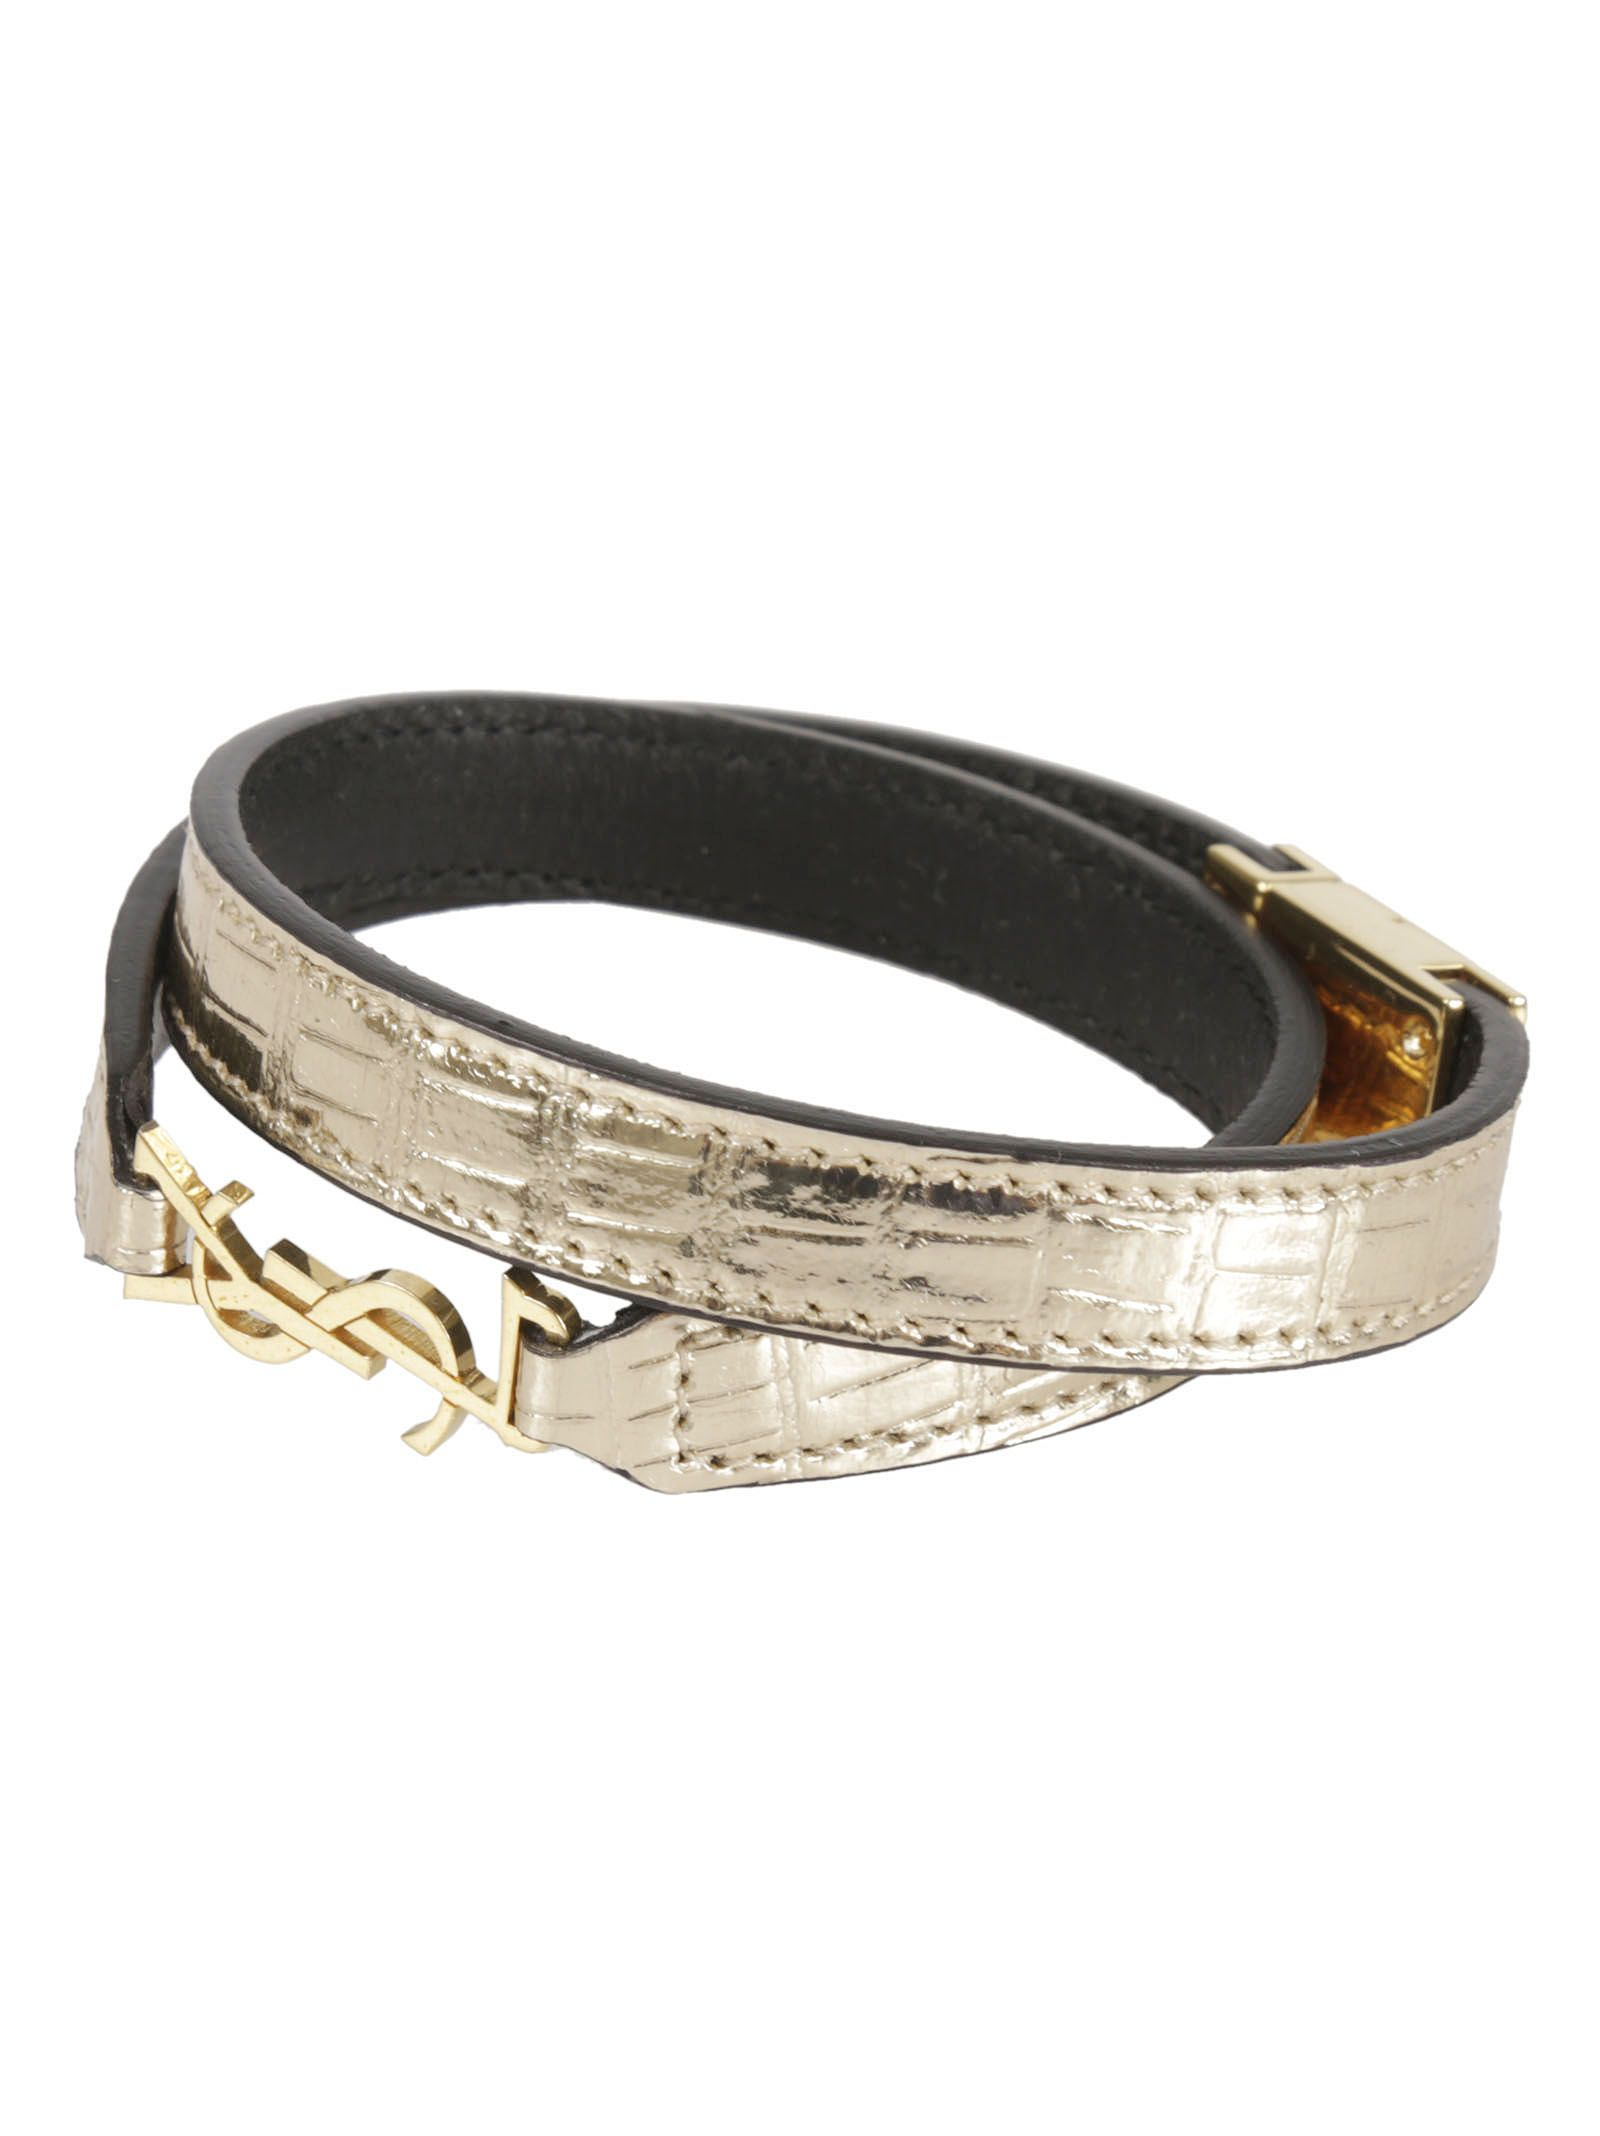 Double Wrap Bracelet from Saint Laurent: Gold Double Wrap Bracelet with gold-tone hardware